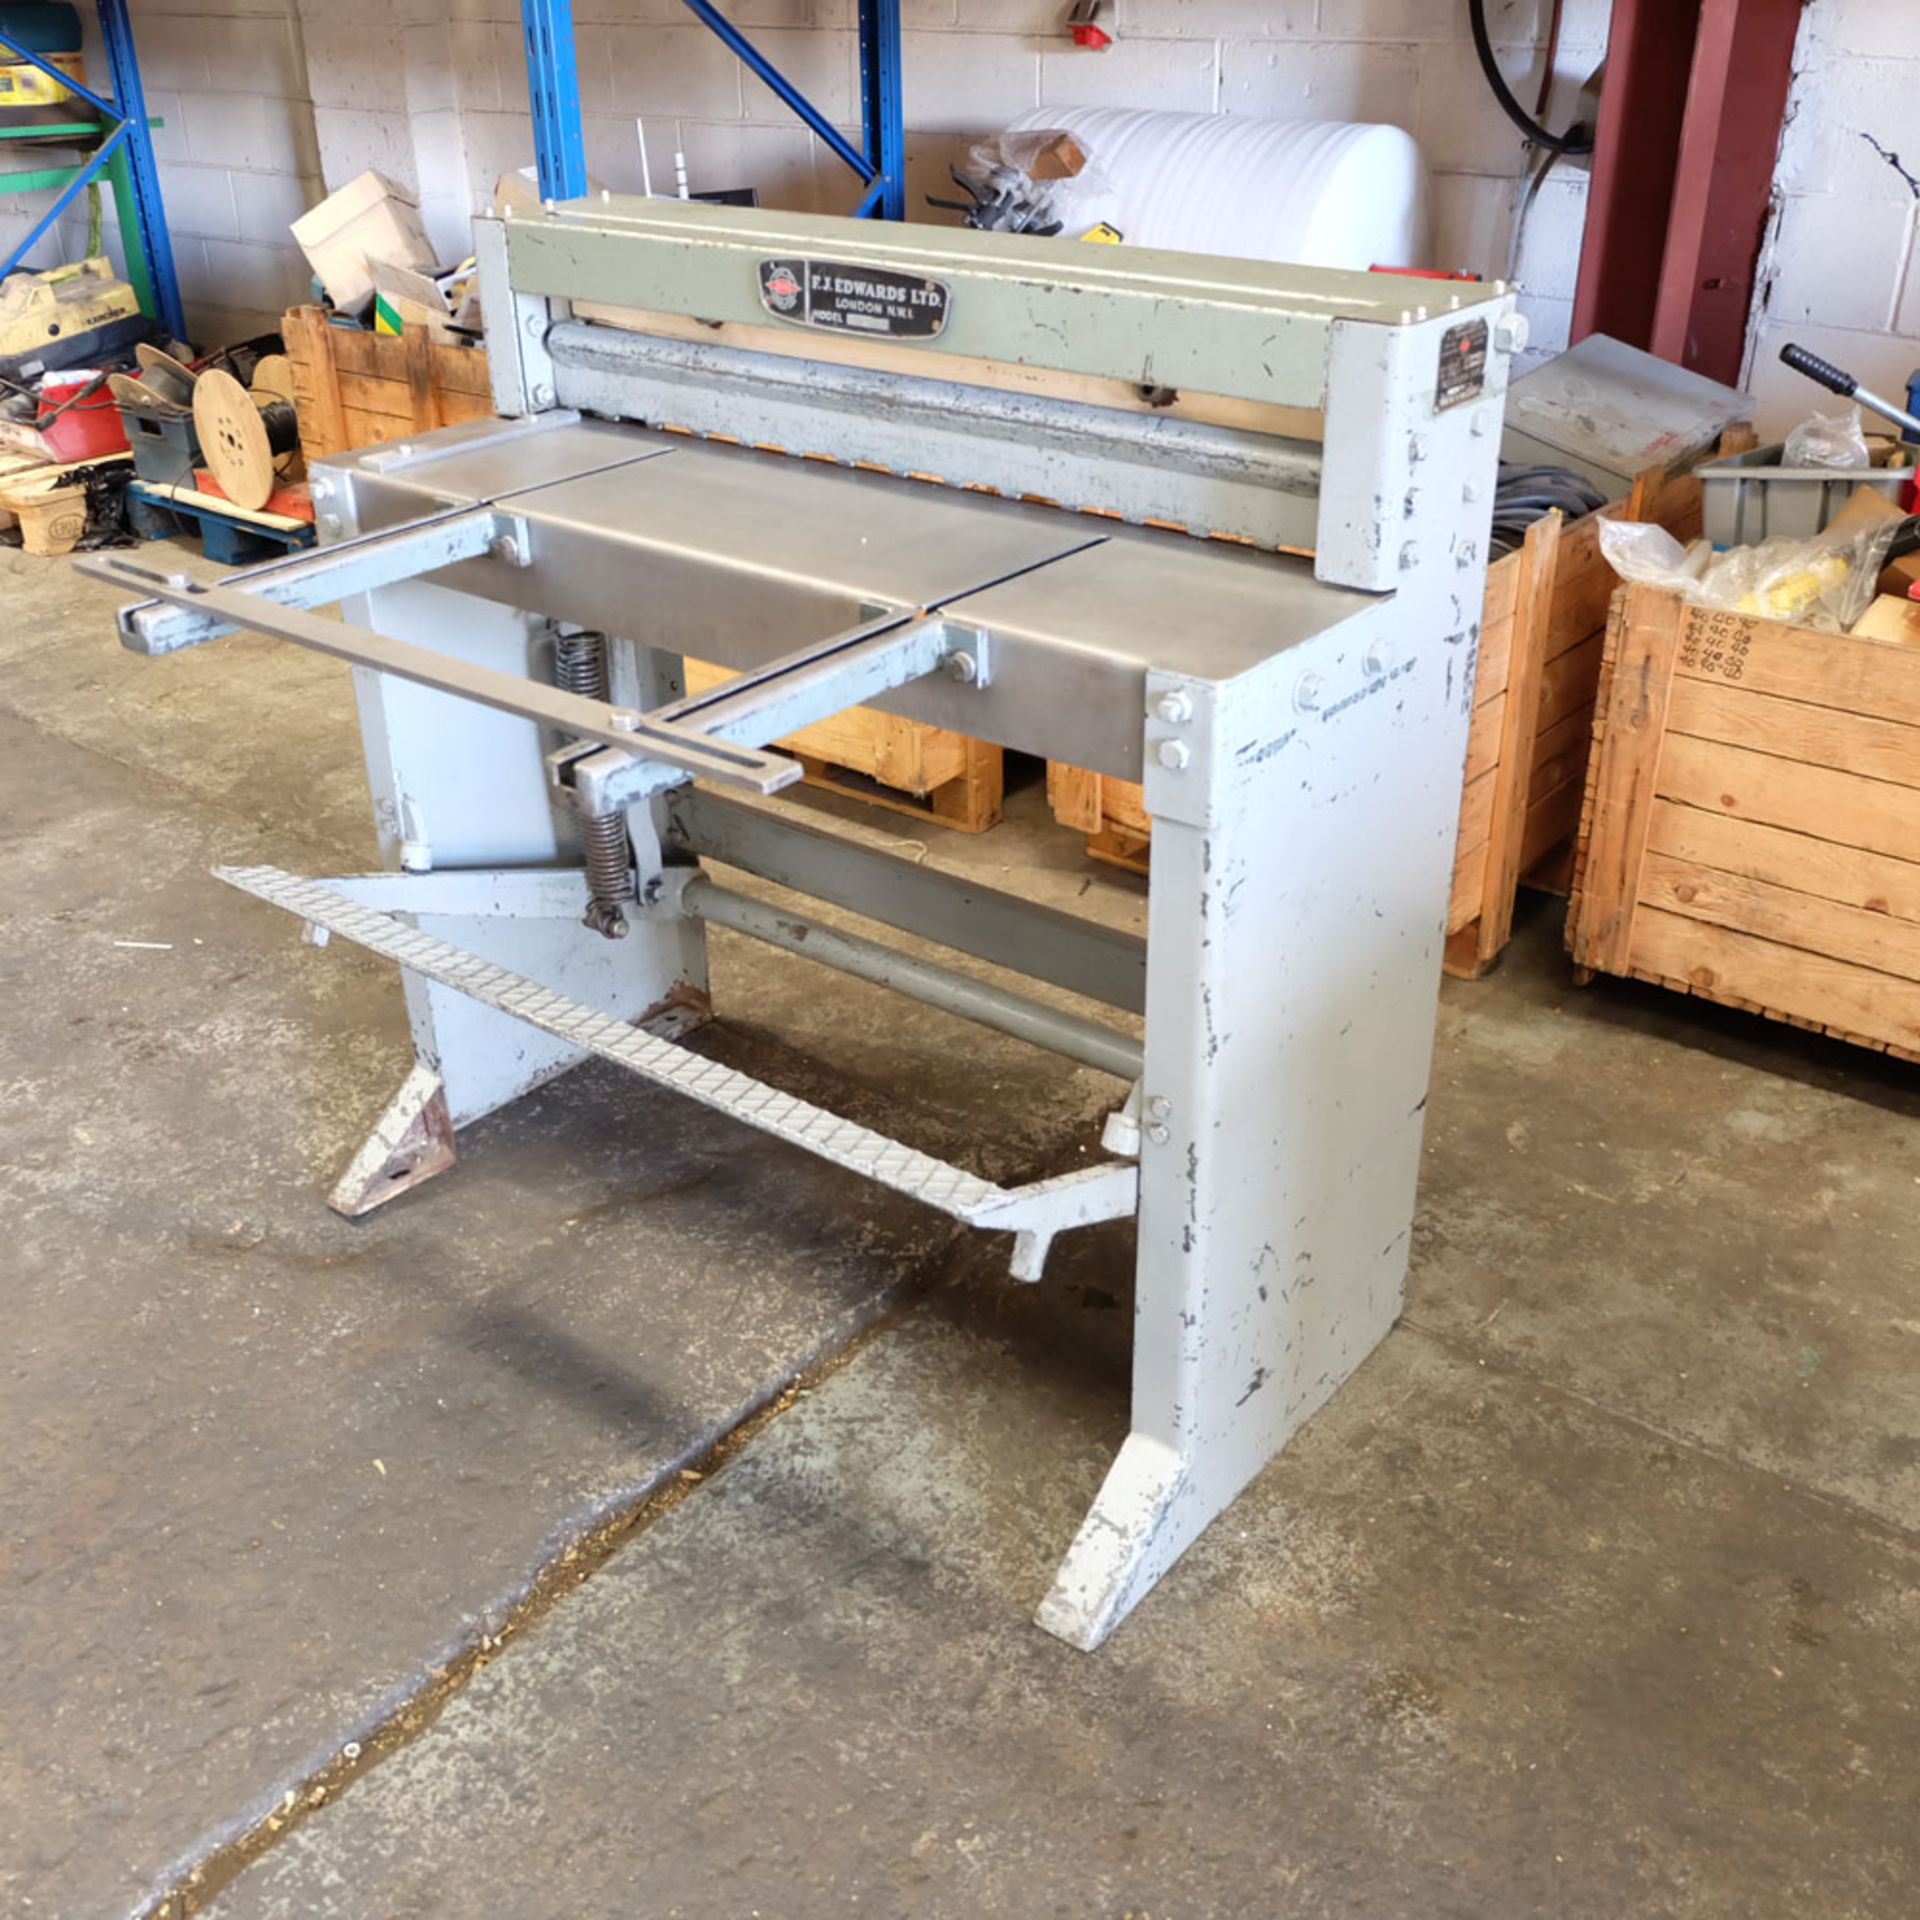 "Edwards Treadle Guillotine 3ft x 16swg. Capacity 36"" x 16swg. Back Gauge. Front Supports. - Image 5 of 8"